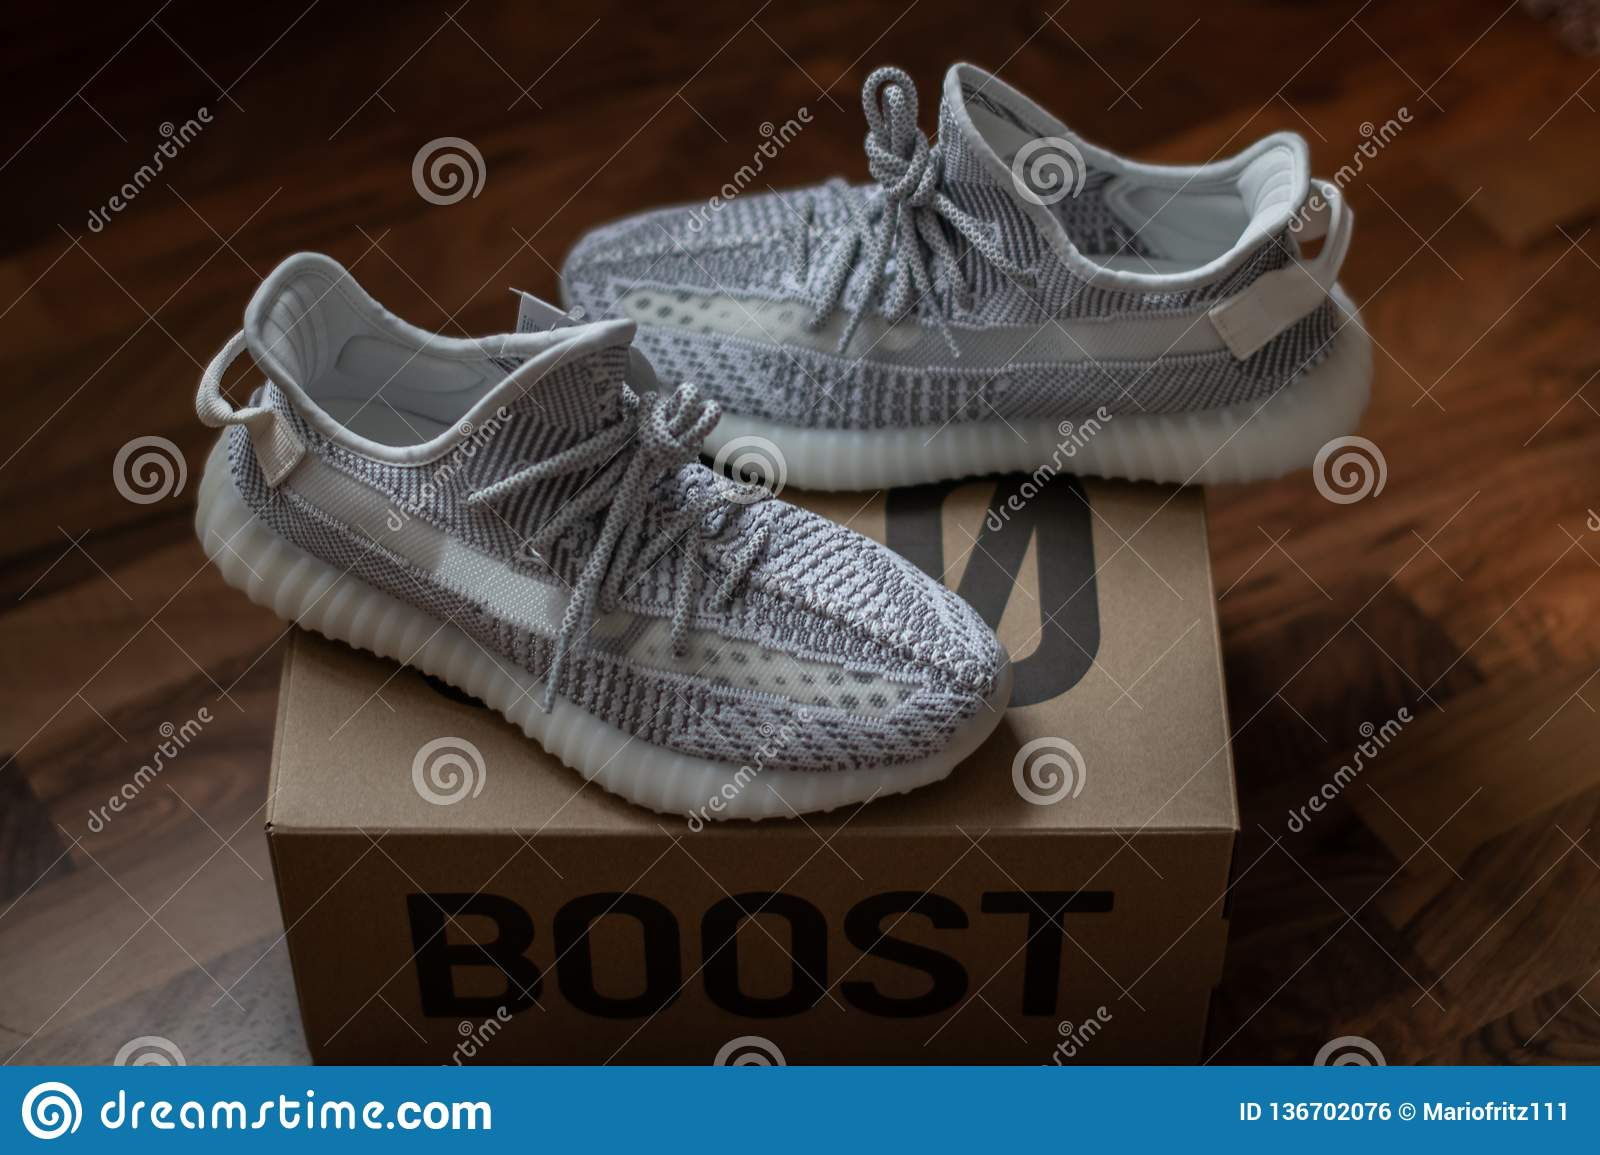 1d57132c Adidas Yeezy Boost 350 V2 Static standing on the 350 carton. Released on  December 26, 2018.